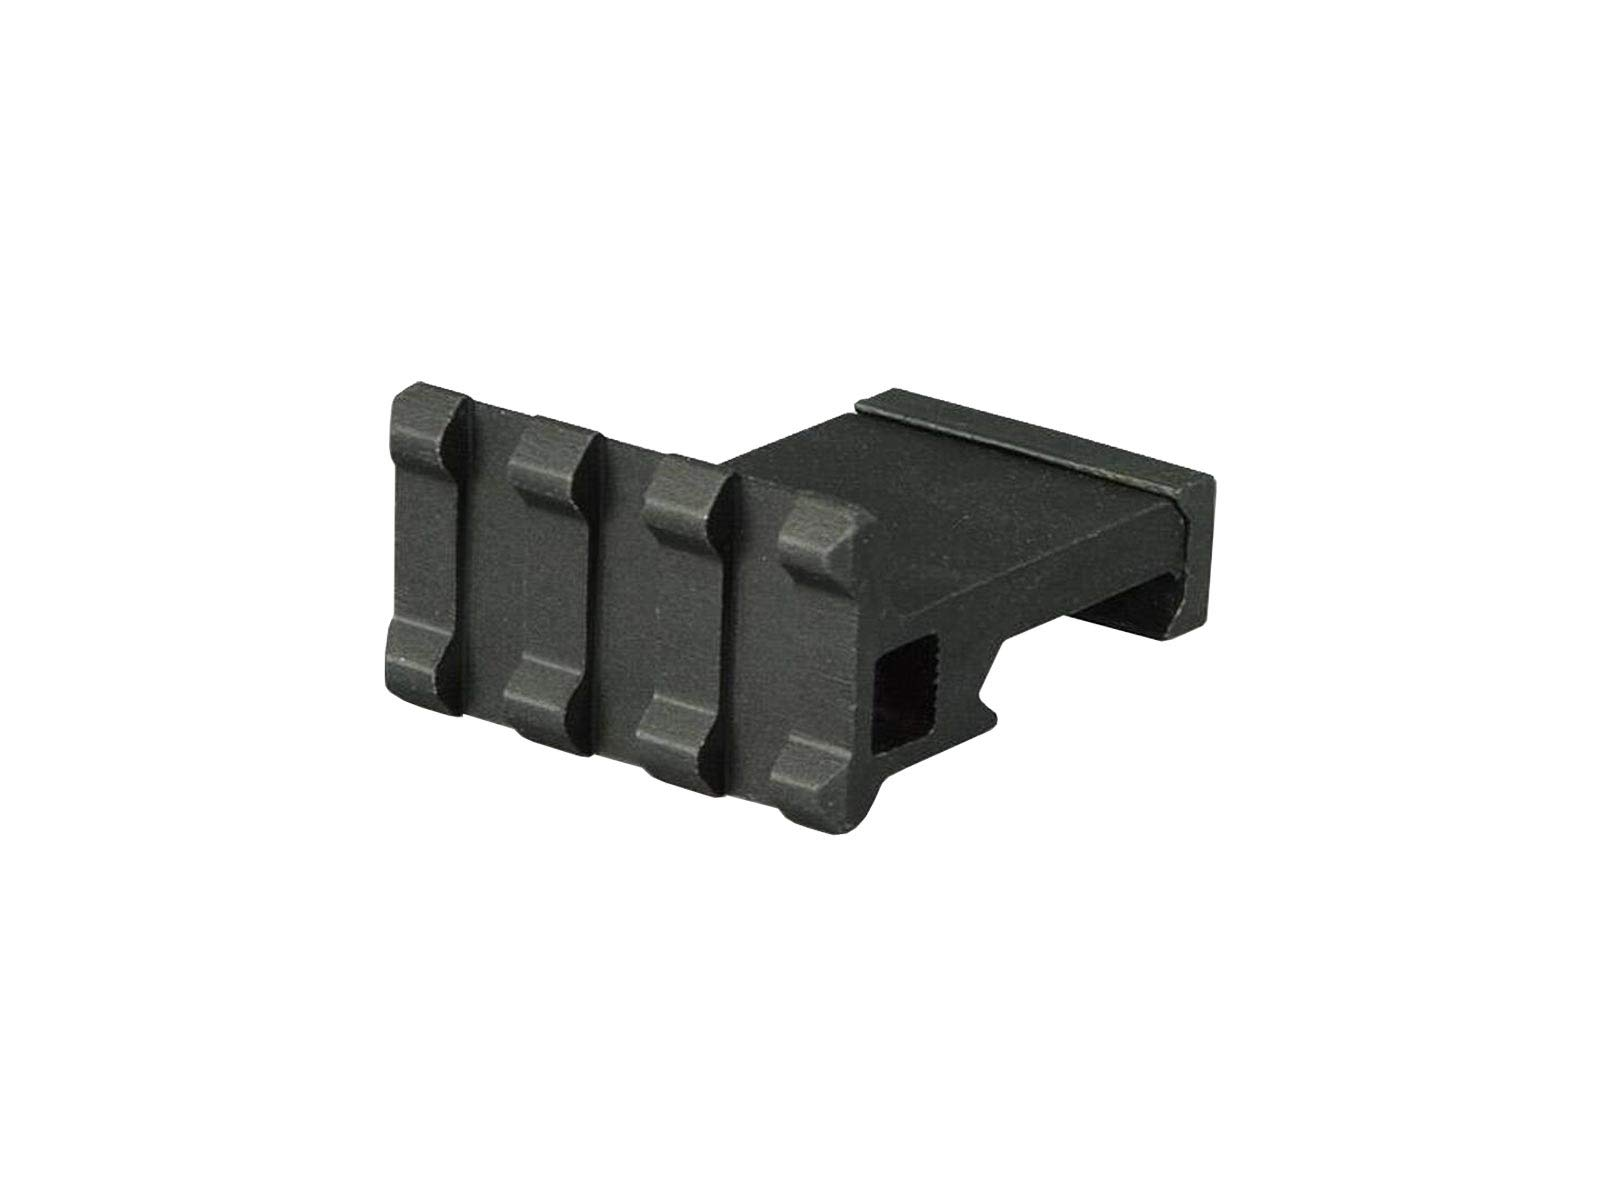 "Low Profile Tactical Picatinny/Weaver 90 Degree Angle Mount, 1.37"" Long with 3 Slots"